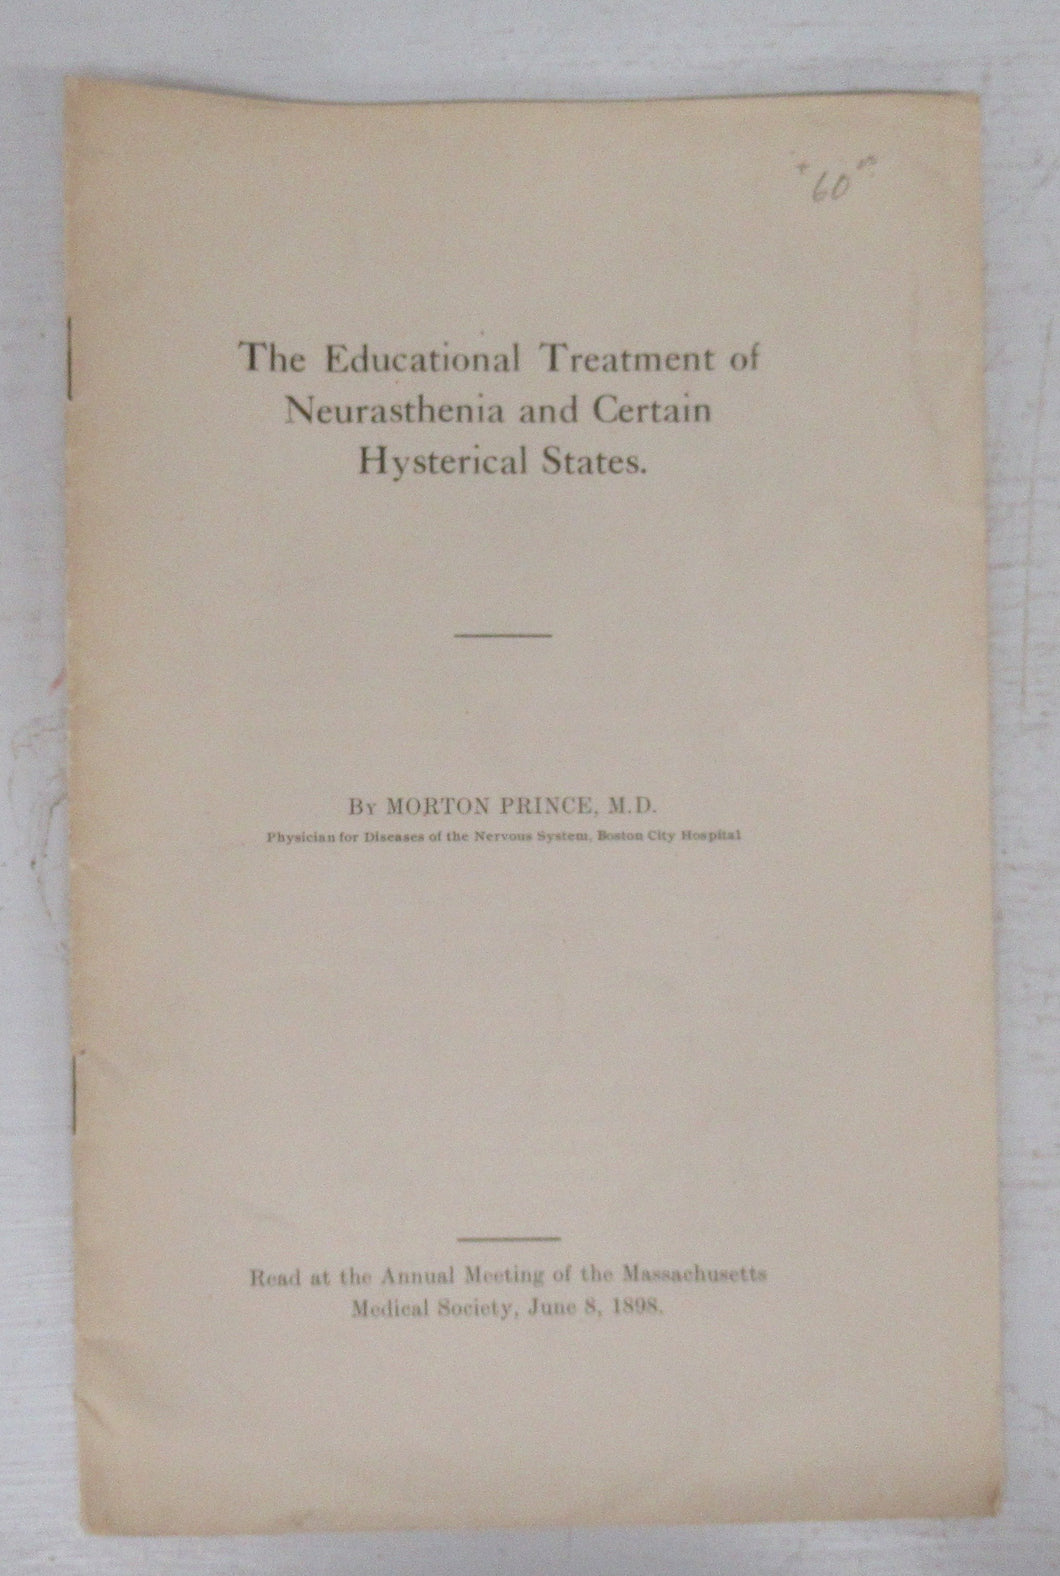 The Educational Treatment of Neurasthenia and Certain Hysterical States